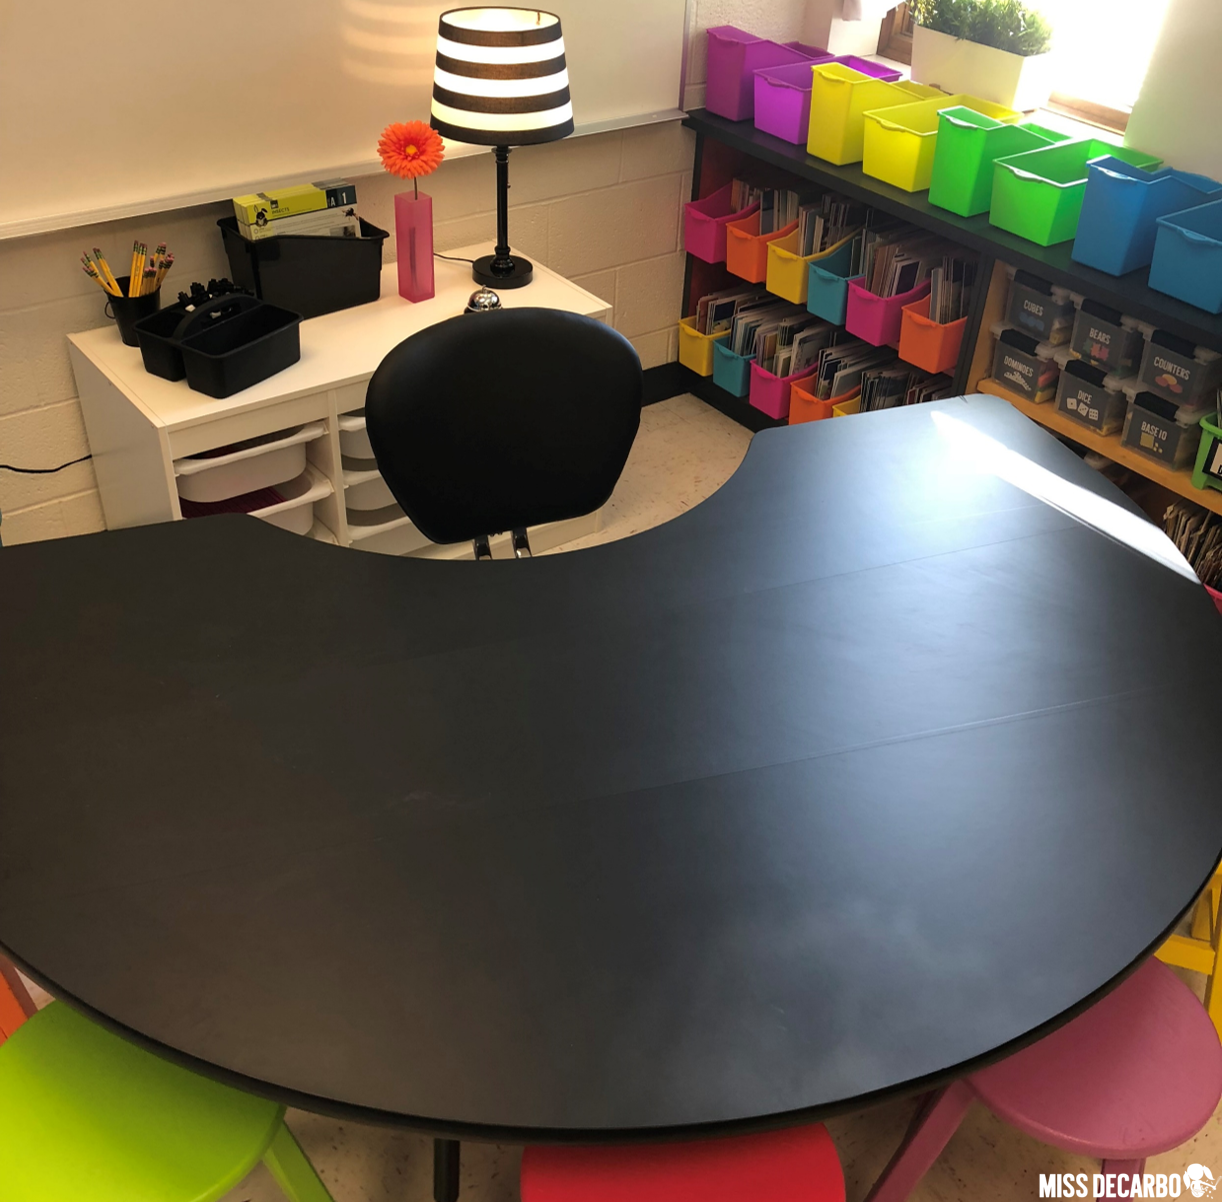 Cover the small group table in your classroom with contact paper to give it a new look!